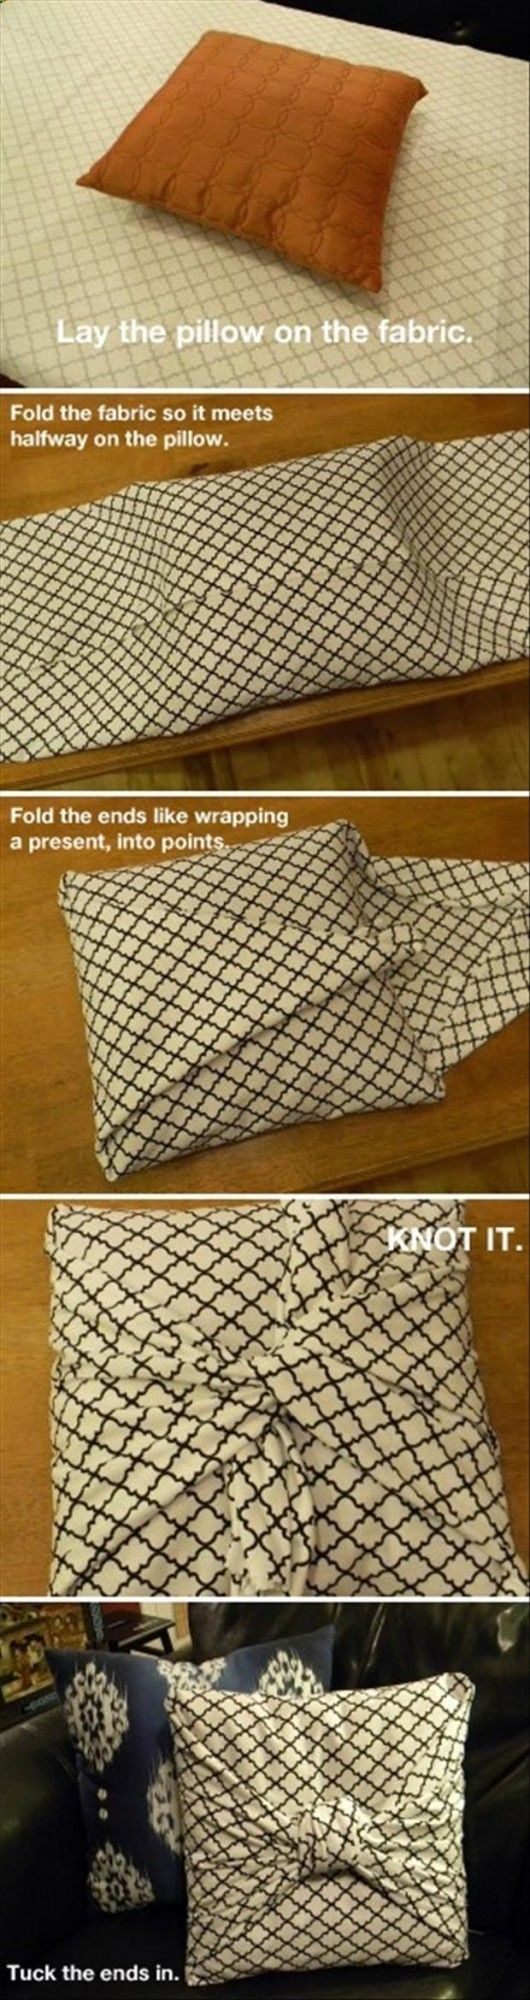 19 Great DIY Tutorials for Home Decoration - Pillow cover -perfect!